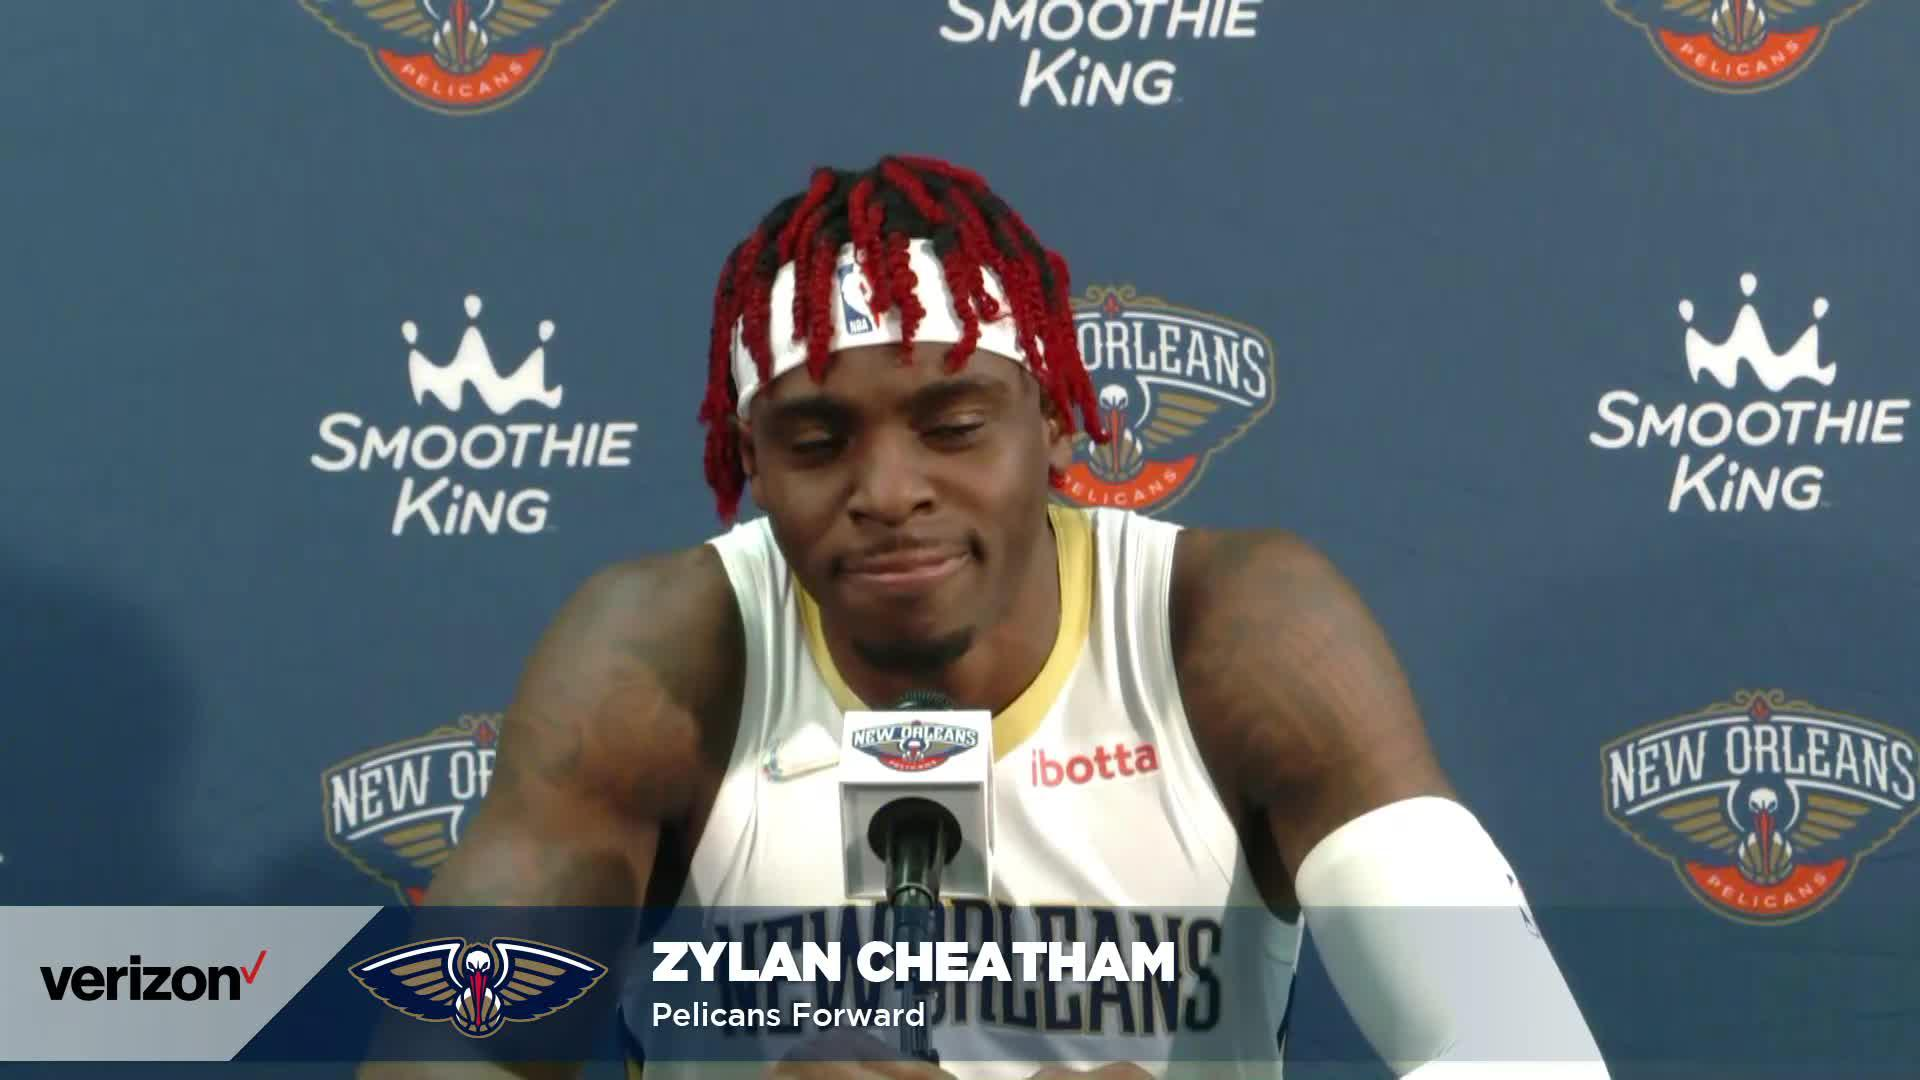 Zylan Cheatham on Willie Green, returning to New Orleans | Pelicans Media Day 2021 Interviews